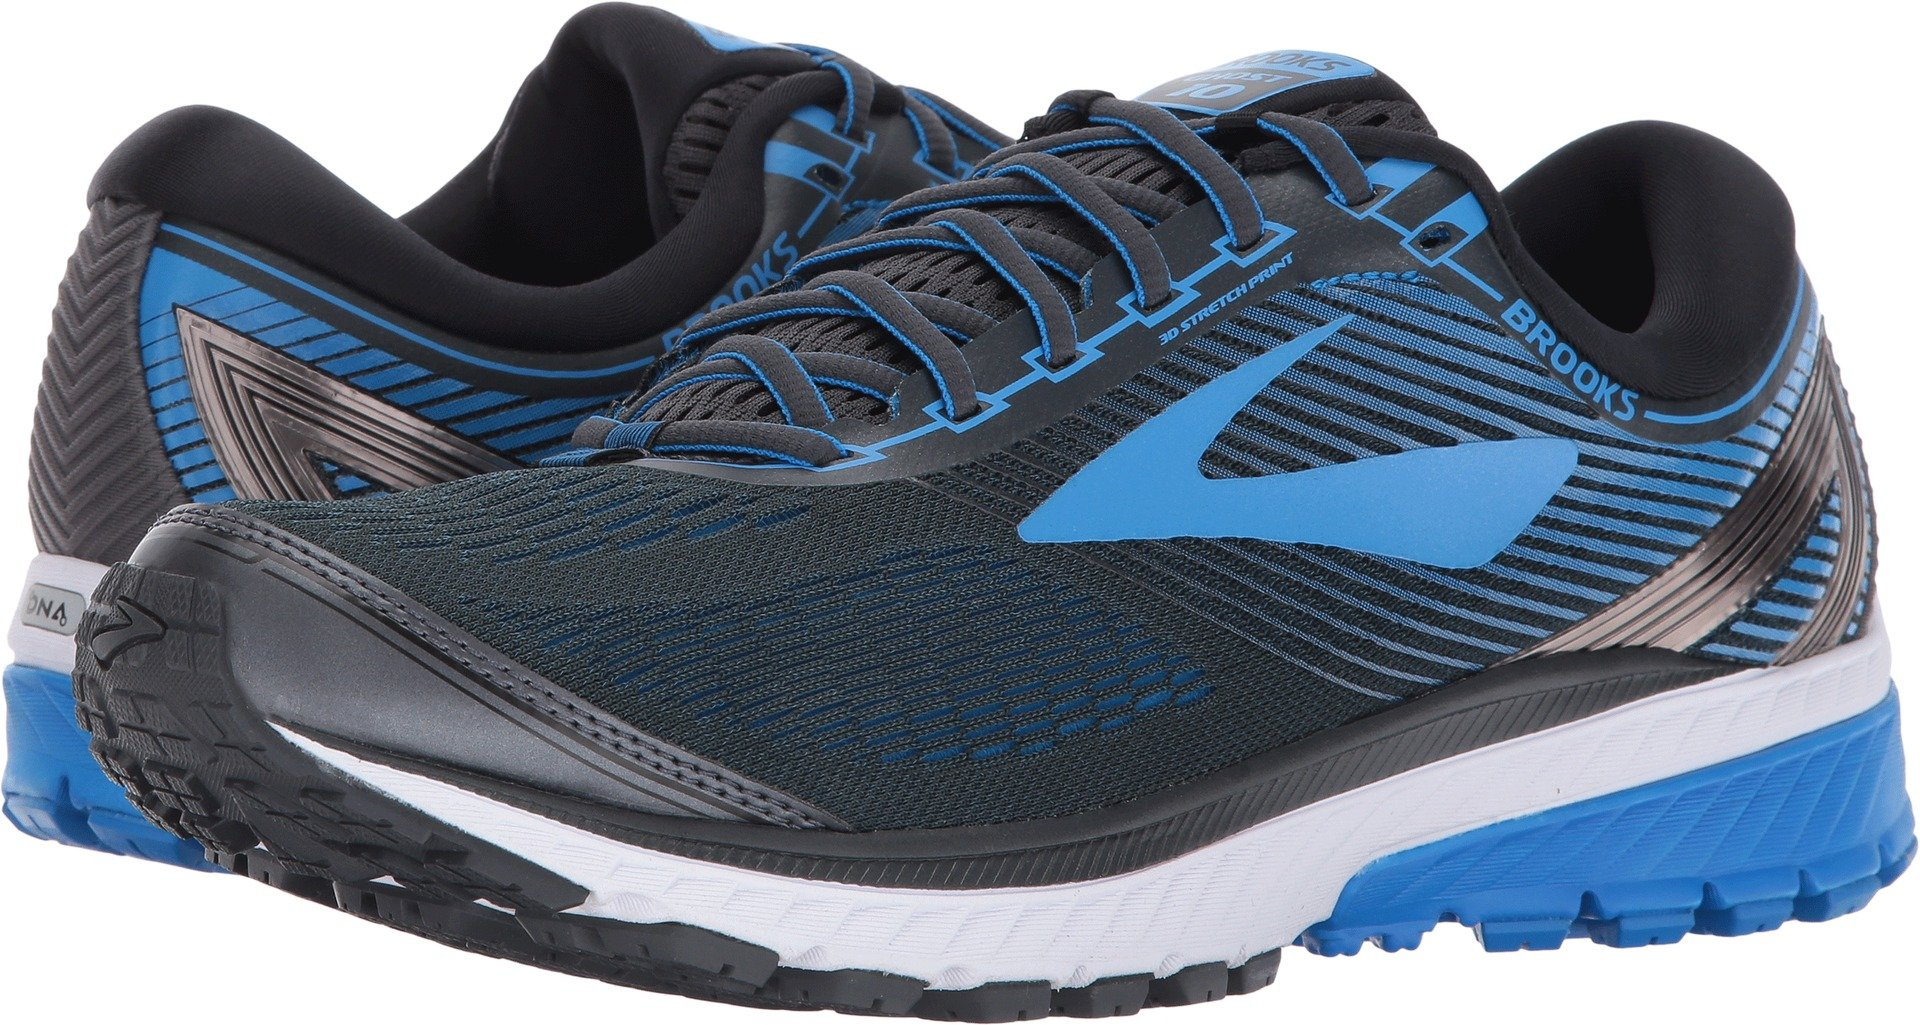 Brooks Men's Ghost 10 Ebony/Metallic Charcoal/Electric Blue 7.5 D US by Brooks